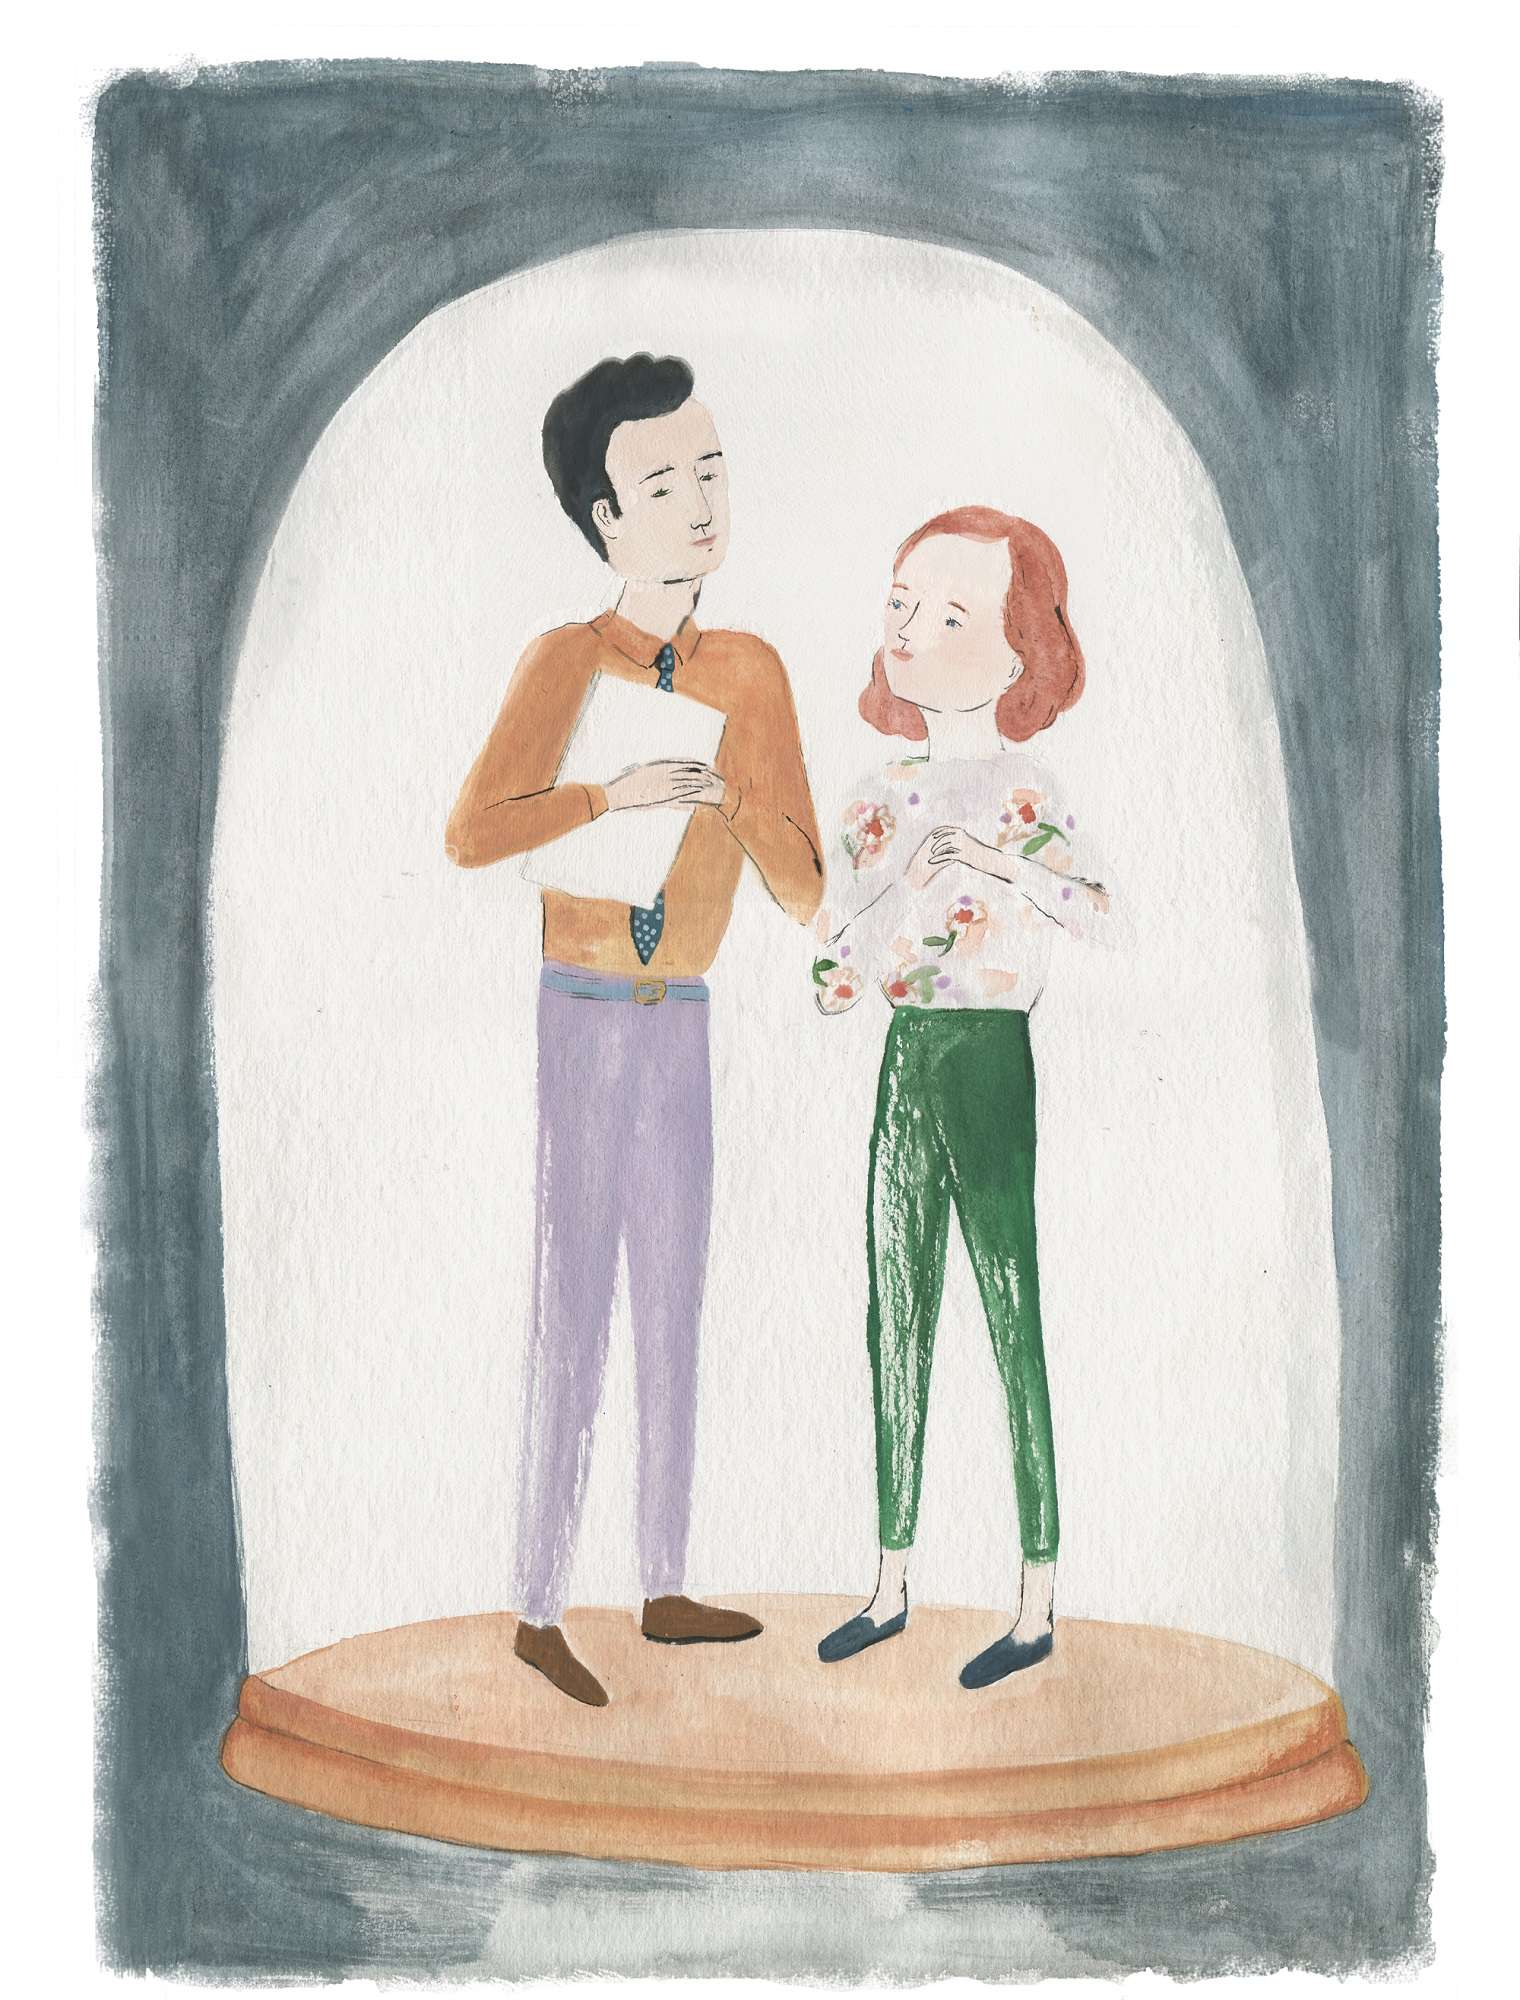 DP4 Chiara Arkesteijn illustratie A&O psychologen